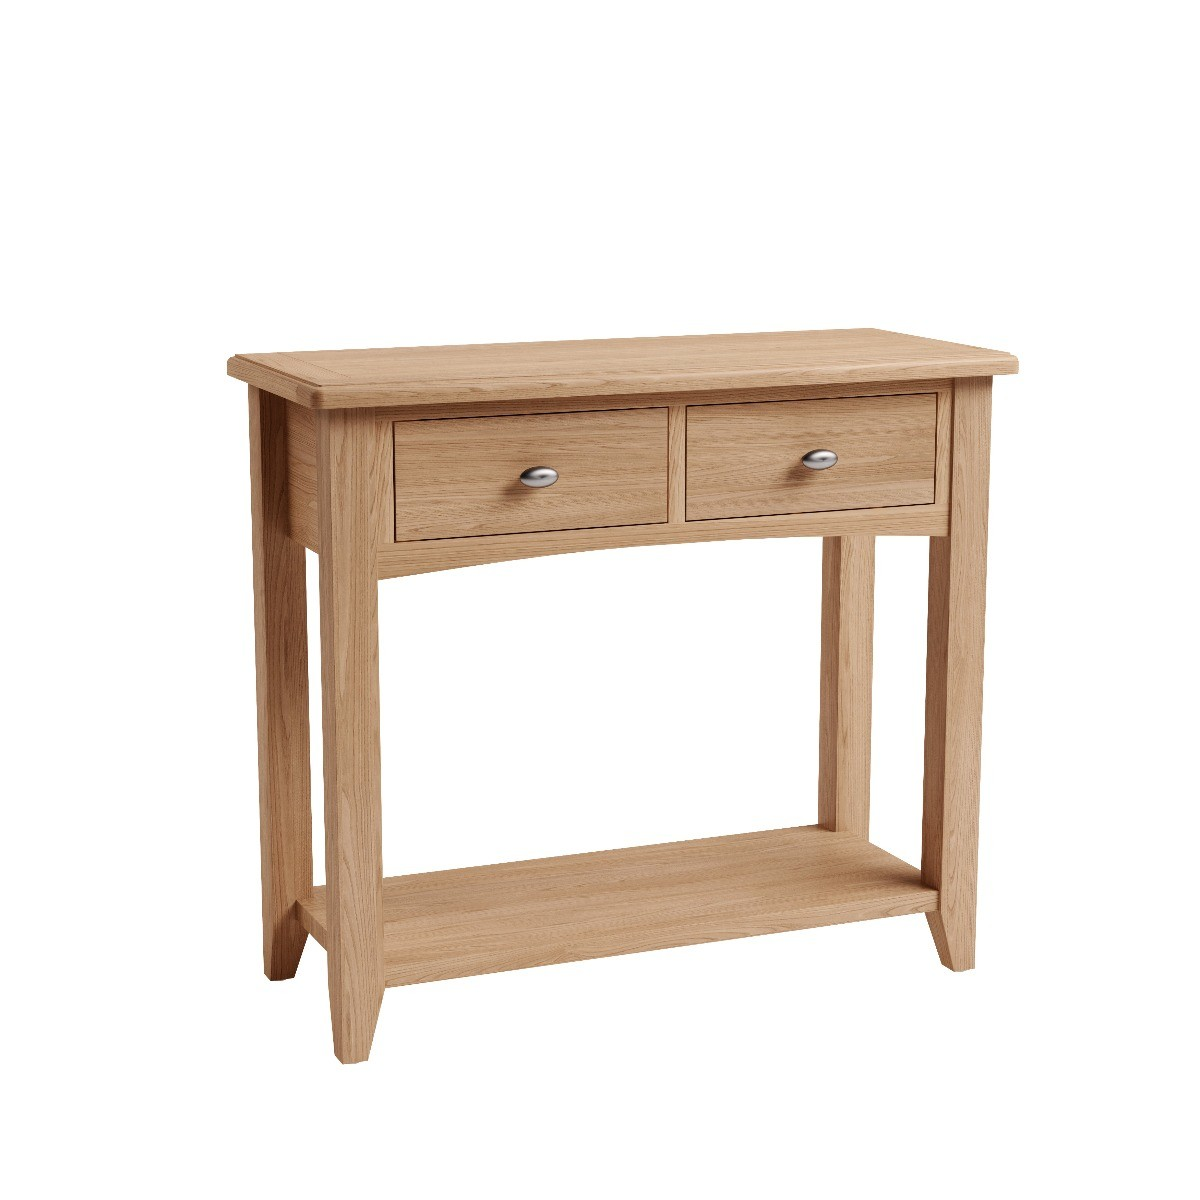 An image of Dante Console Table